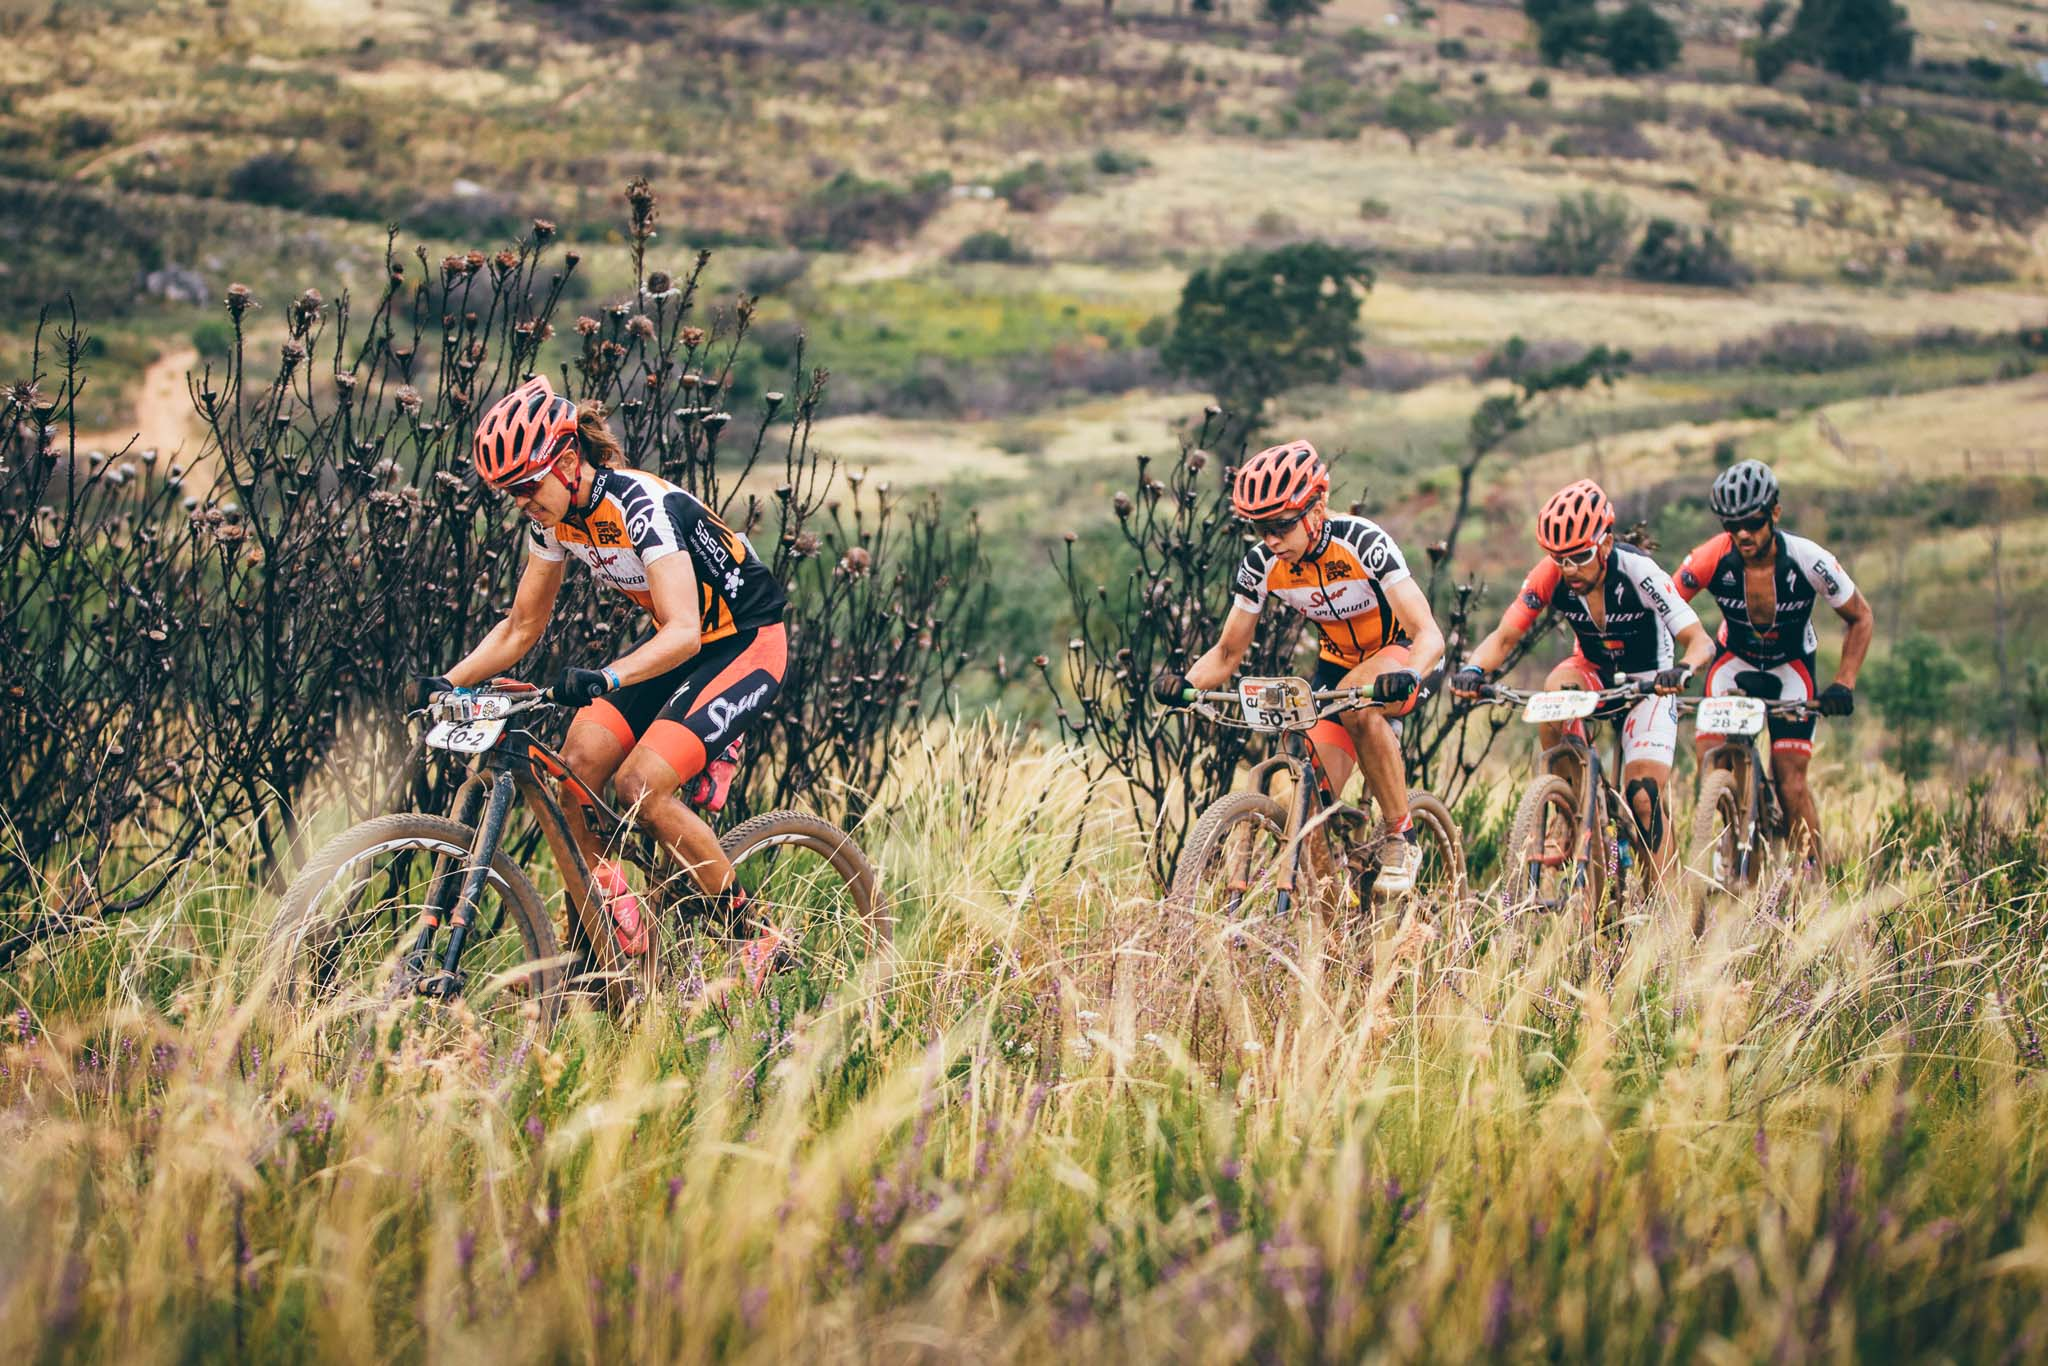 Team Spur Specialized's Annika Langvad and Ariane Kleinhans during stage 4 of the 2016 Absa Cape Epic Mountain Bike stage race from the Cape Peninsula University of Technology in Wellington, South Africa on the 17th March 2016 Photo by Ewald Sadie/Cape Epic/SPORTZPICS PLEASE ENSURE THE APPROPRIATE CREDIT IS GIVEN TO THE PHOTOGRAPHER AND SPORTZPICS ALONG WITH THE ABSA CAPE EPIC ace2016